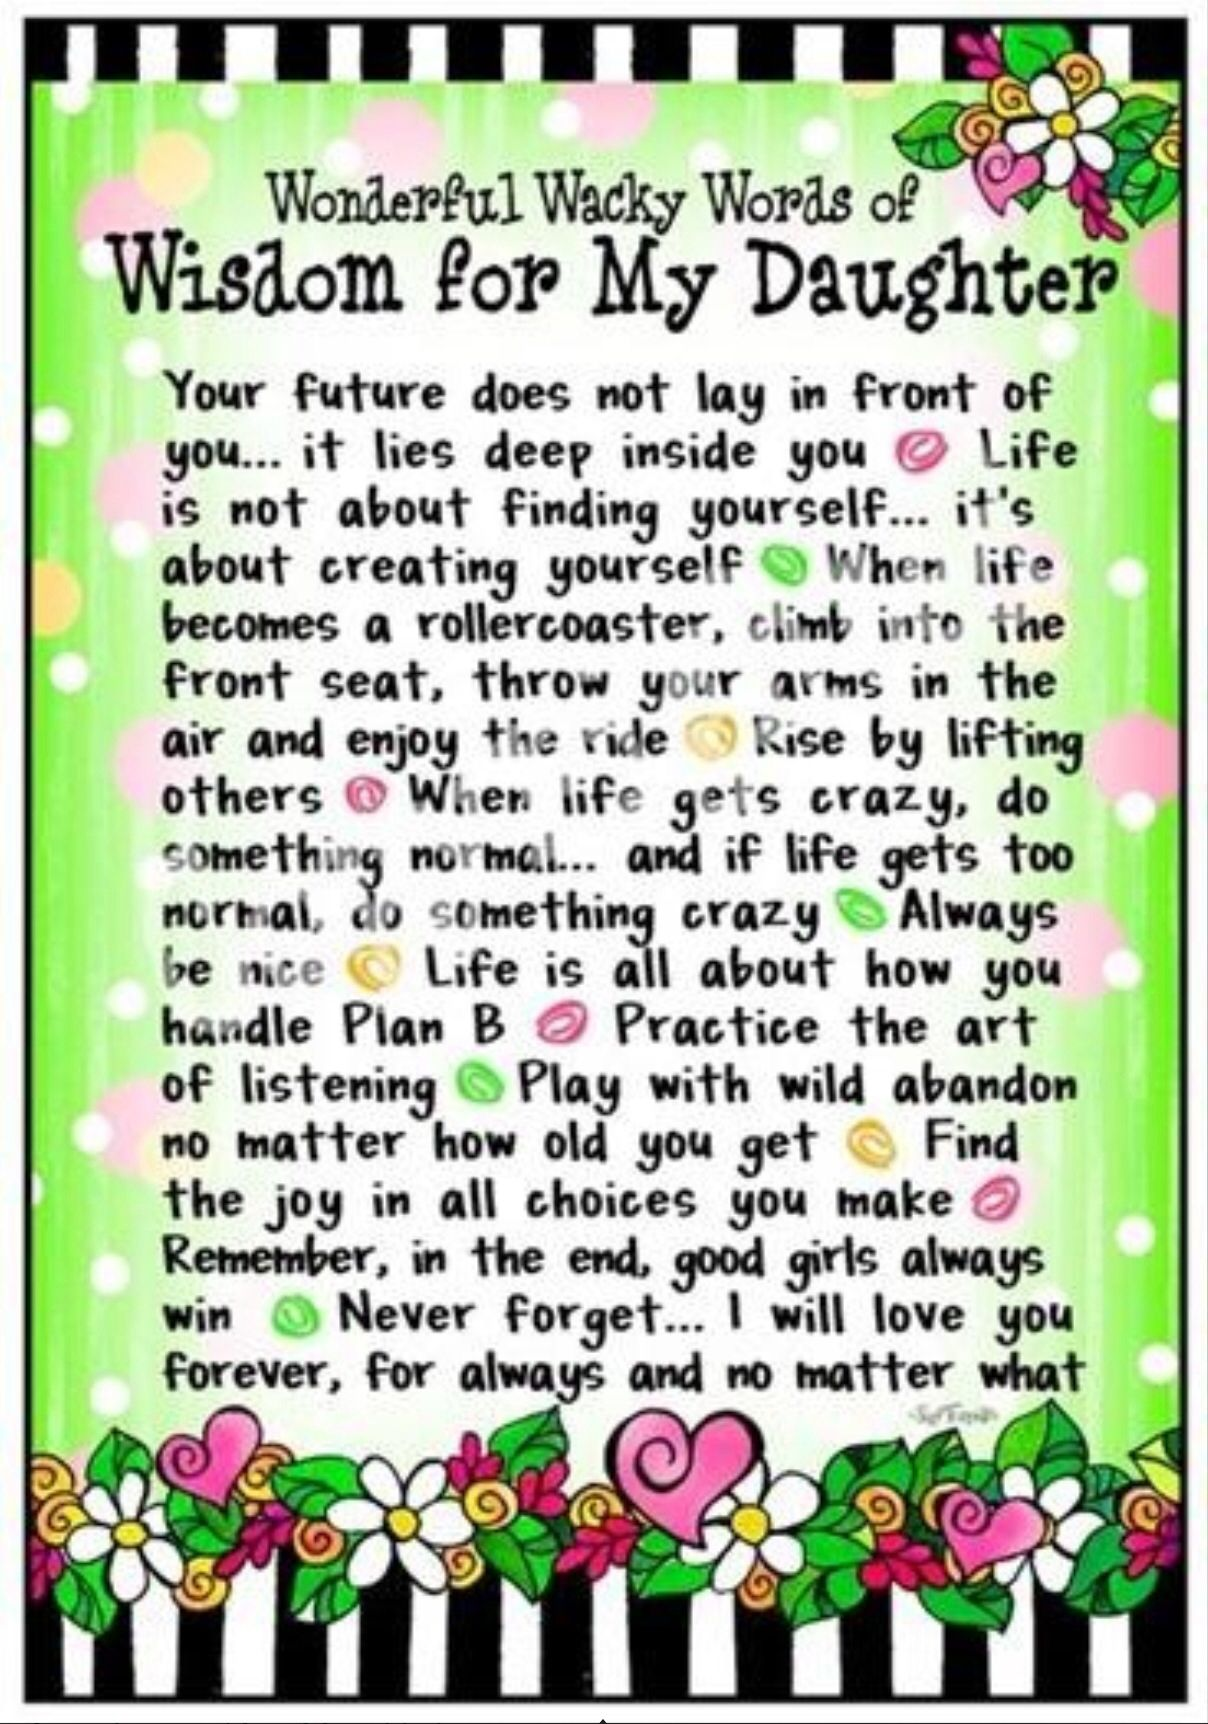 To Tll Daughter Quotes I Love My Daughter To My Daughter There are many places you'll find emotional phrases meant for children from their parent's point of view. pinterest